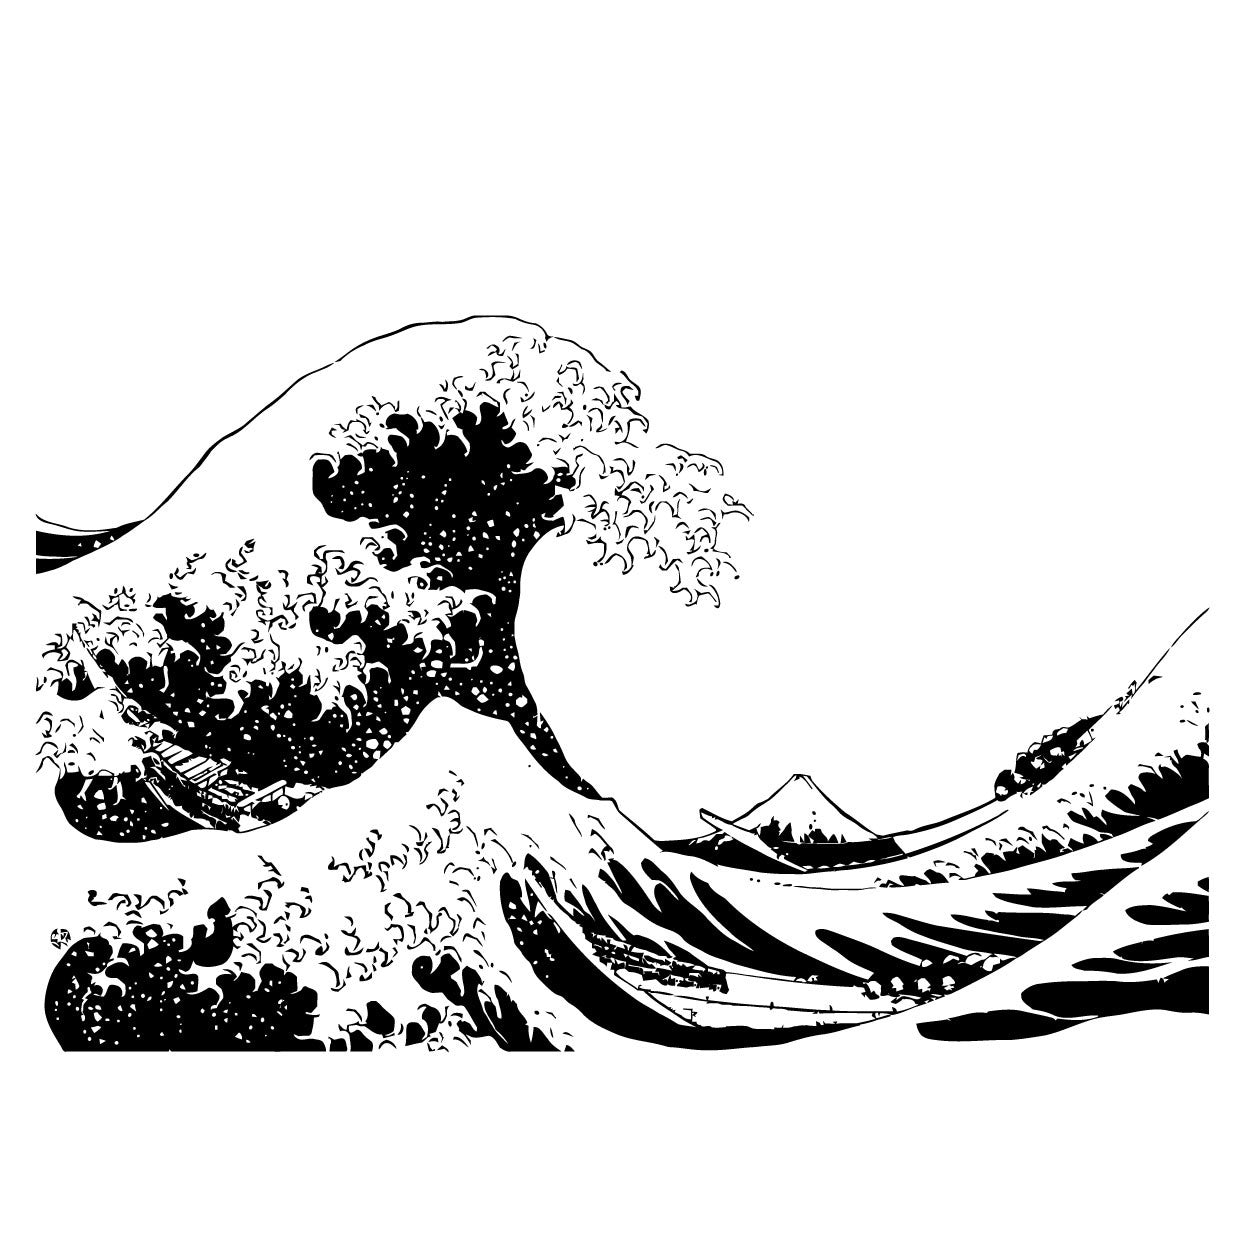 japanese the great wave off kanagawa by hokusai wall decal 363 rh stickerbrand com Wave Outline Clip Art Japanese Cloud Clip Art